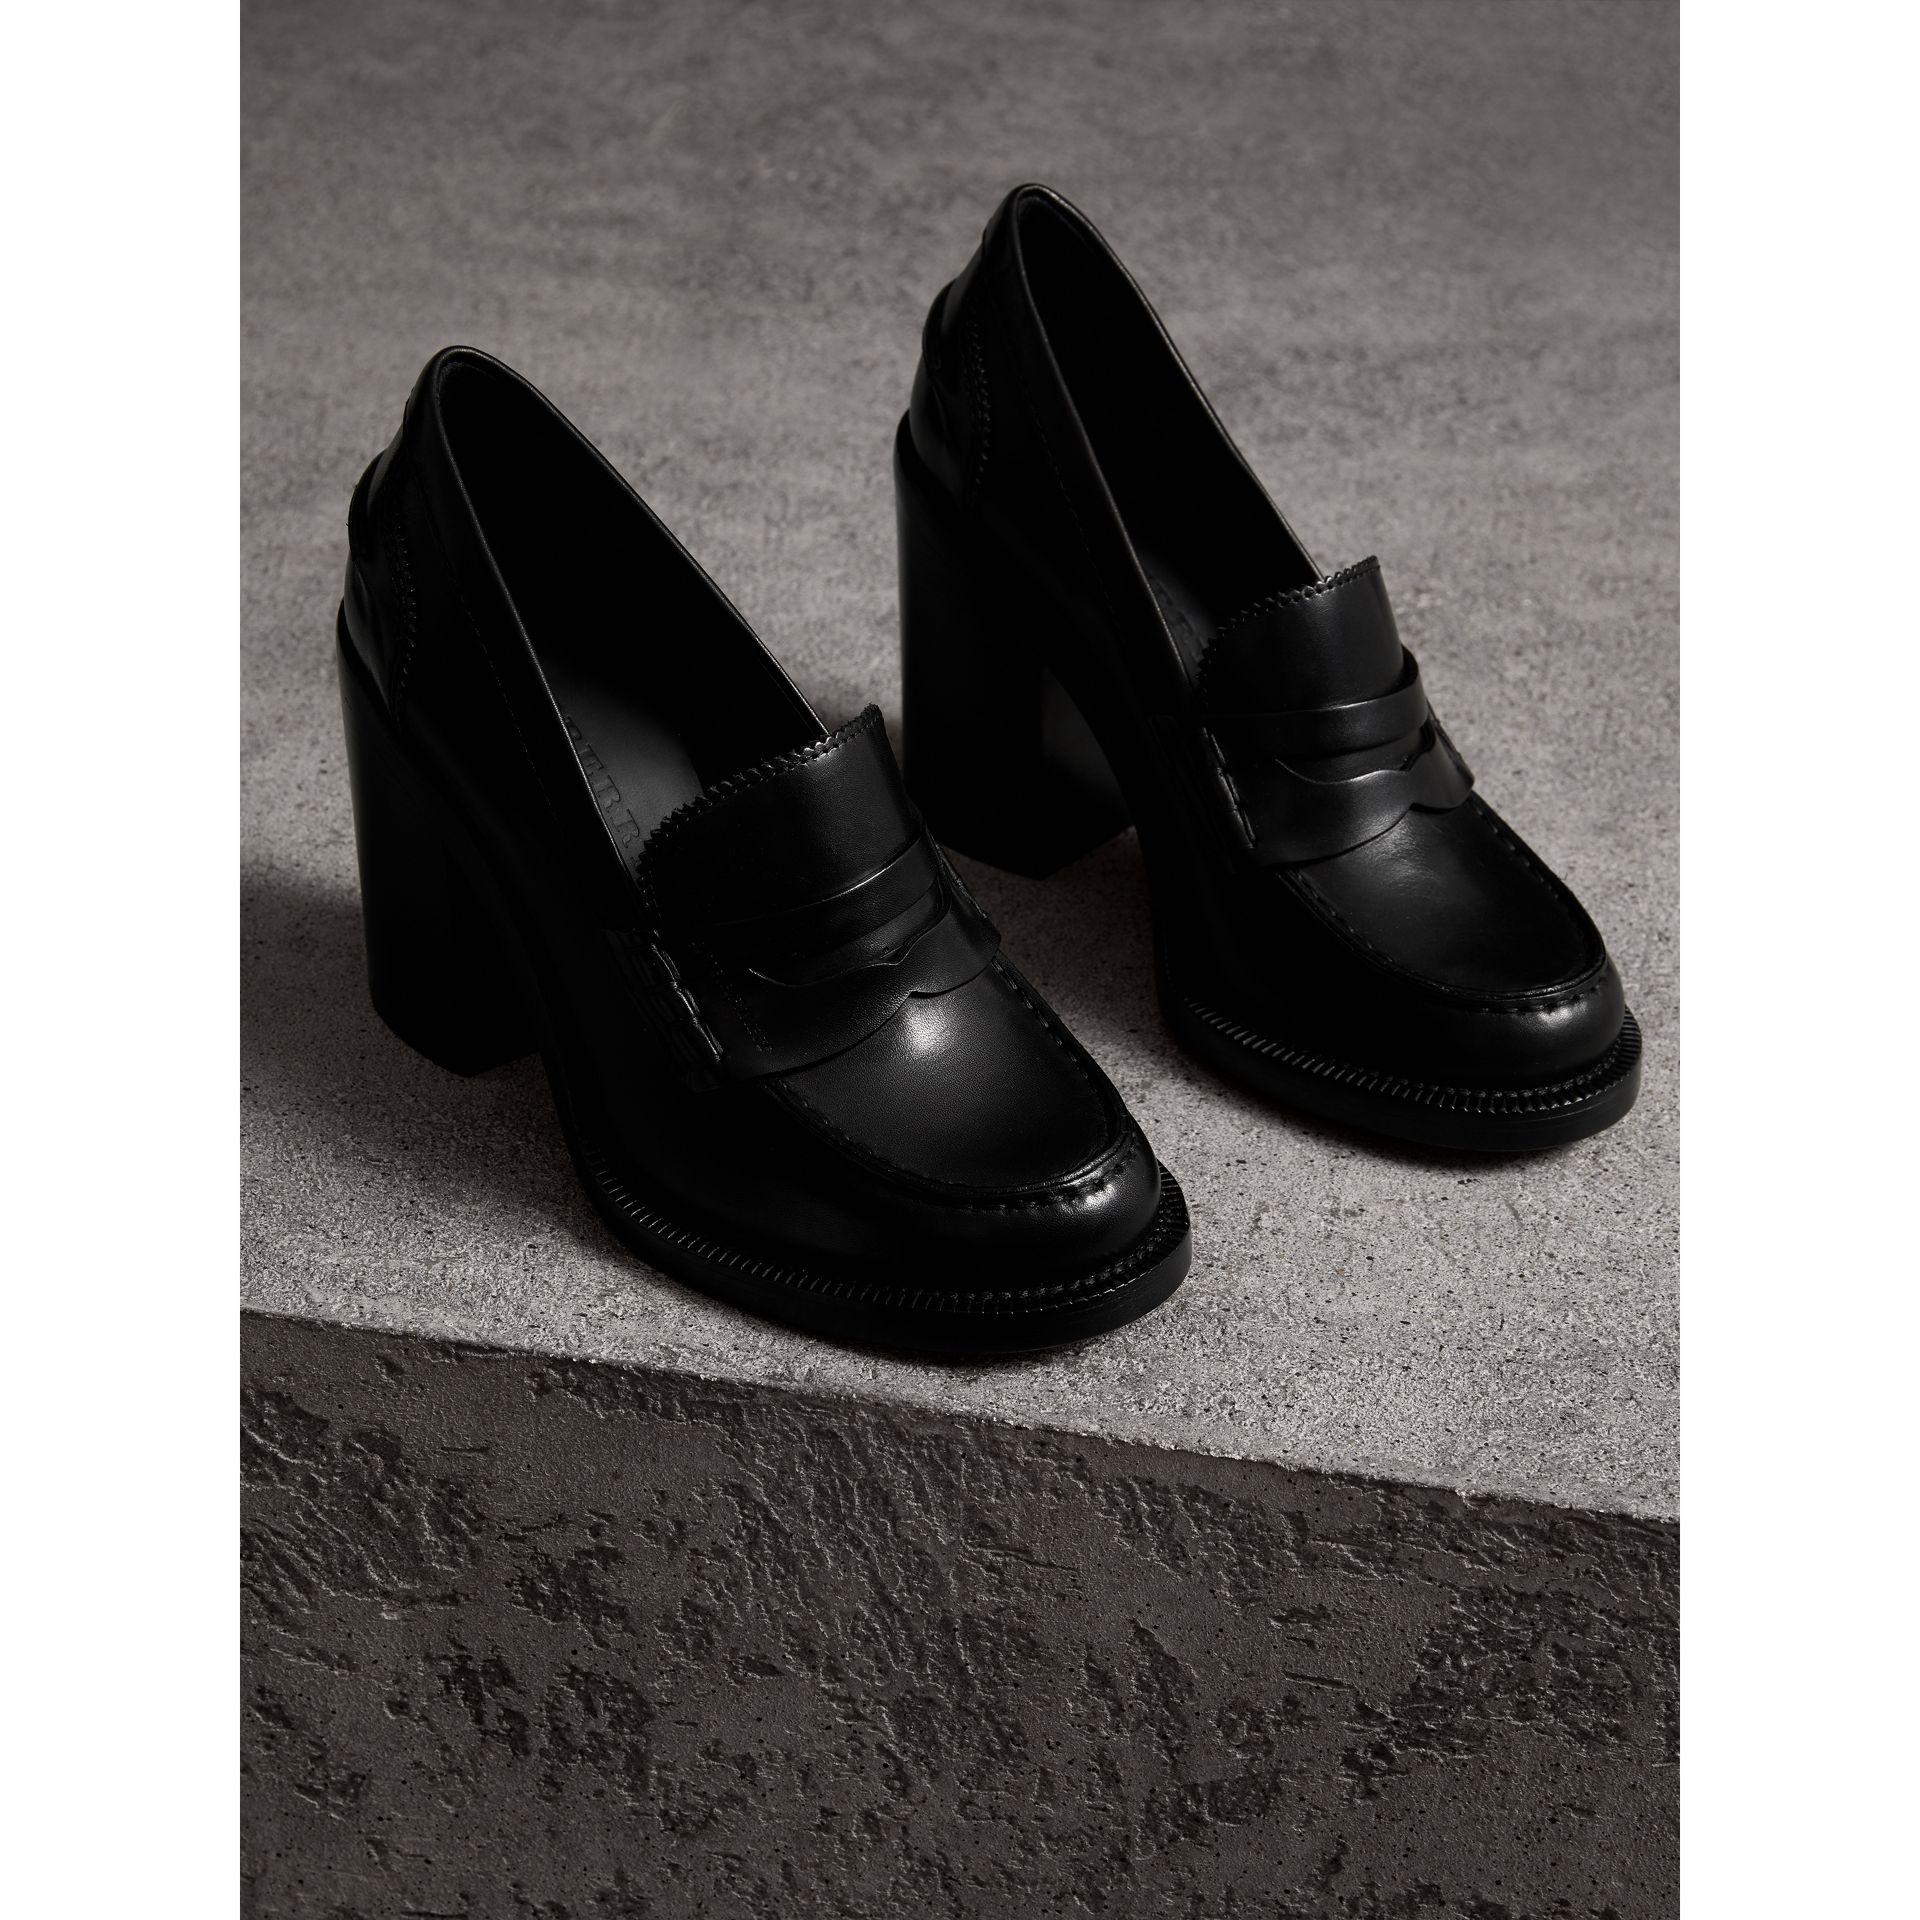 b35c087abd3 Lyst - Burberry Leather Block-heel Penny Loafers in Black